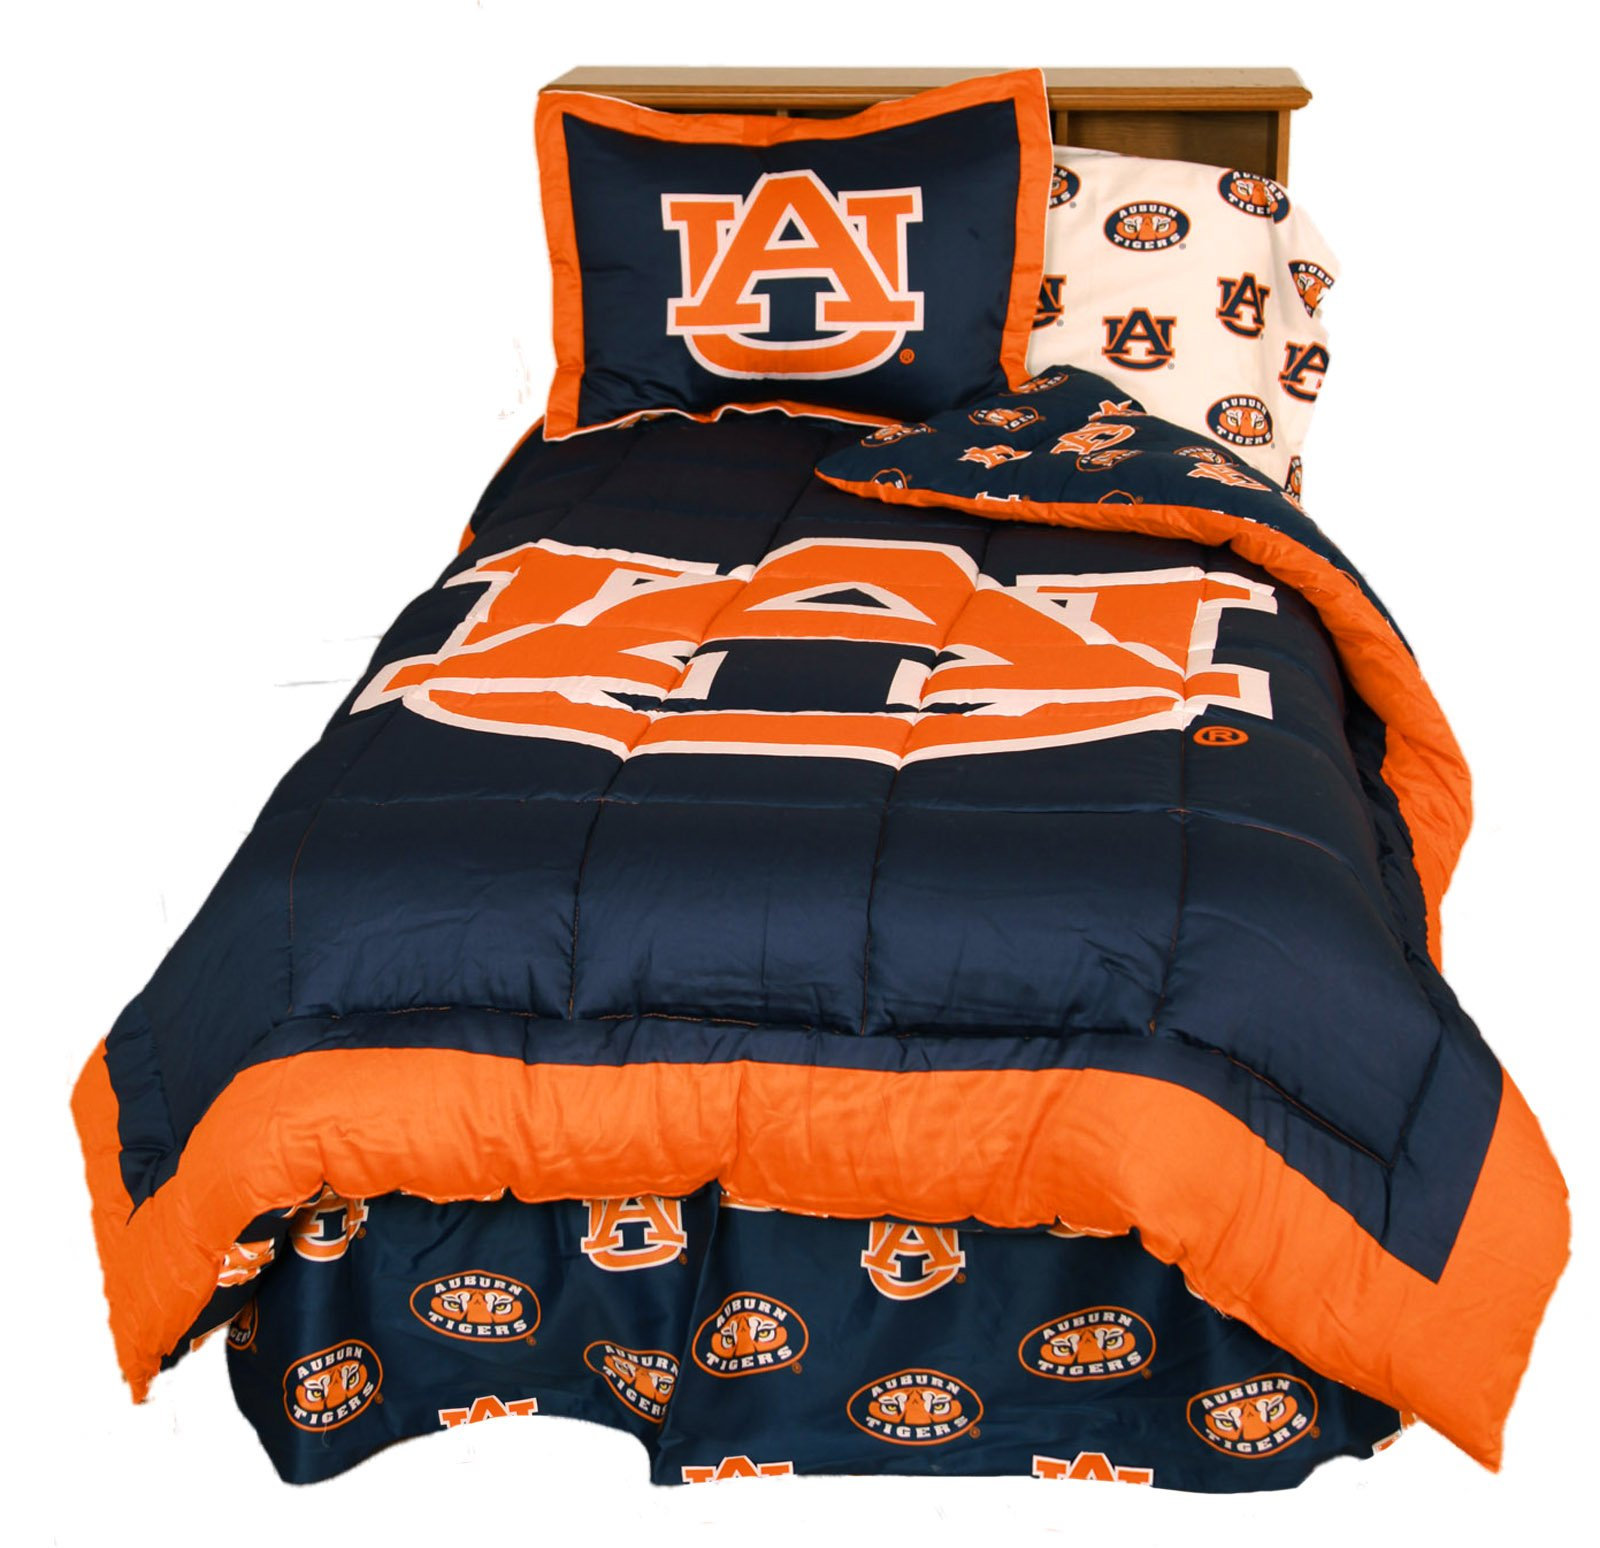 College Covers Auburn Tigers Reversible Comforter Set, King by College Covers (Image #1)